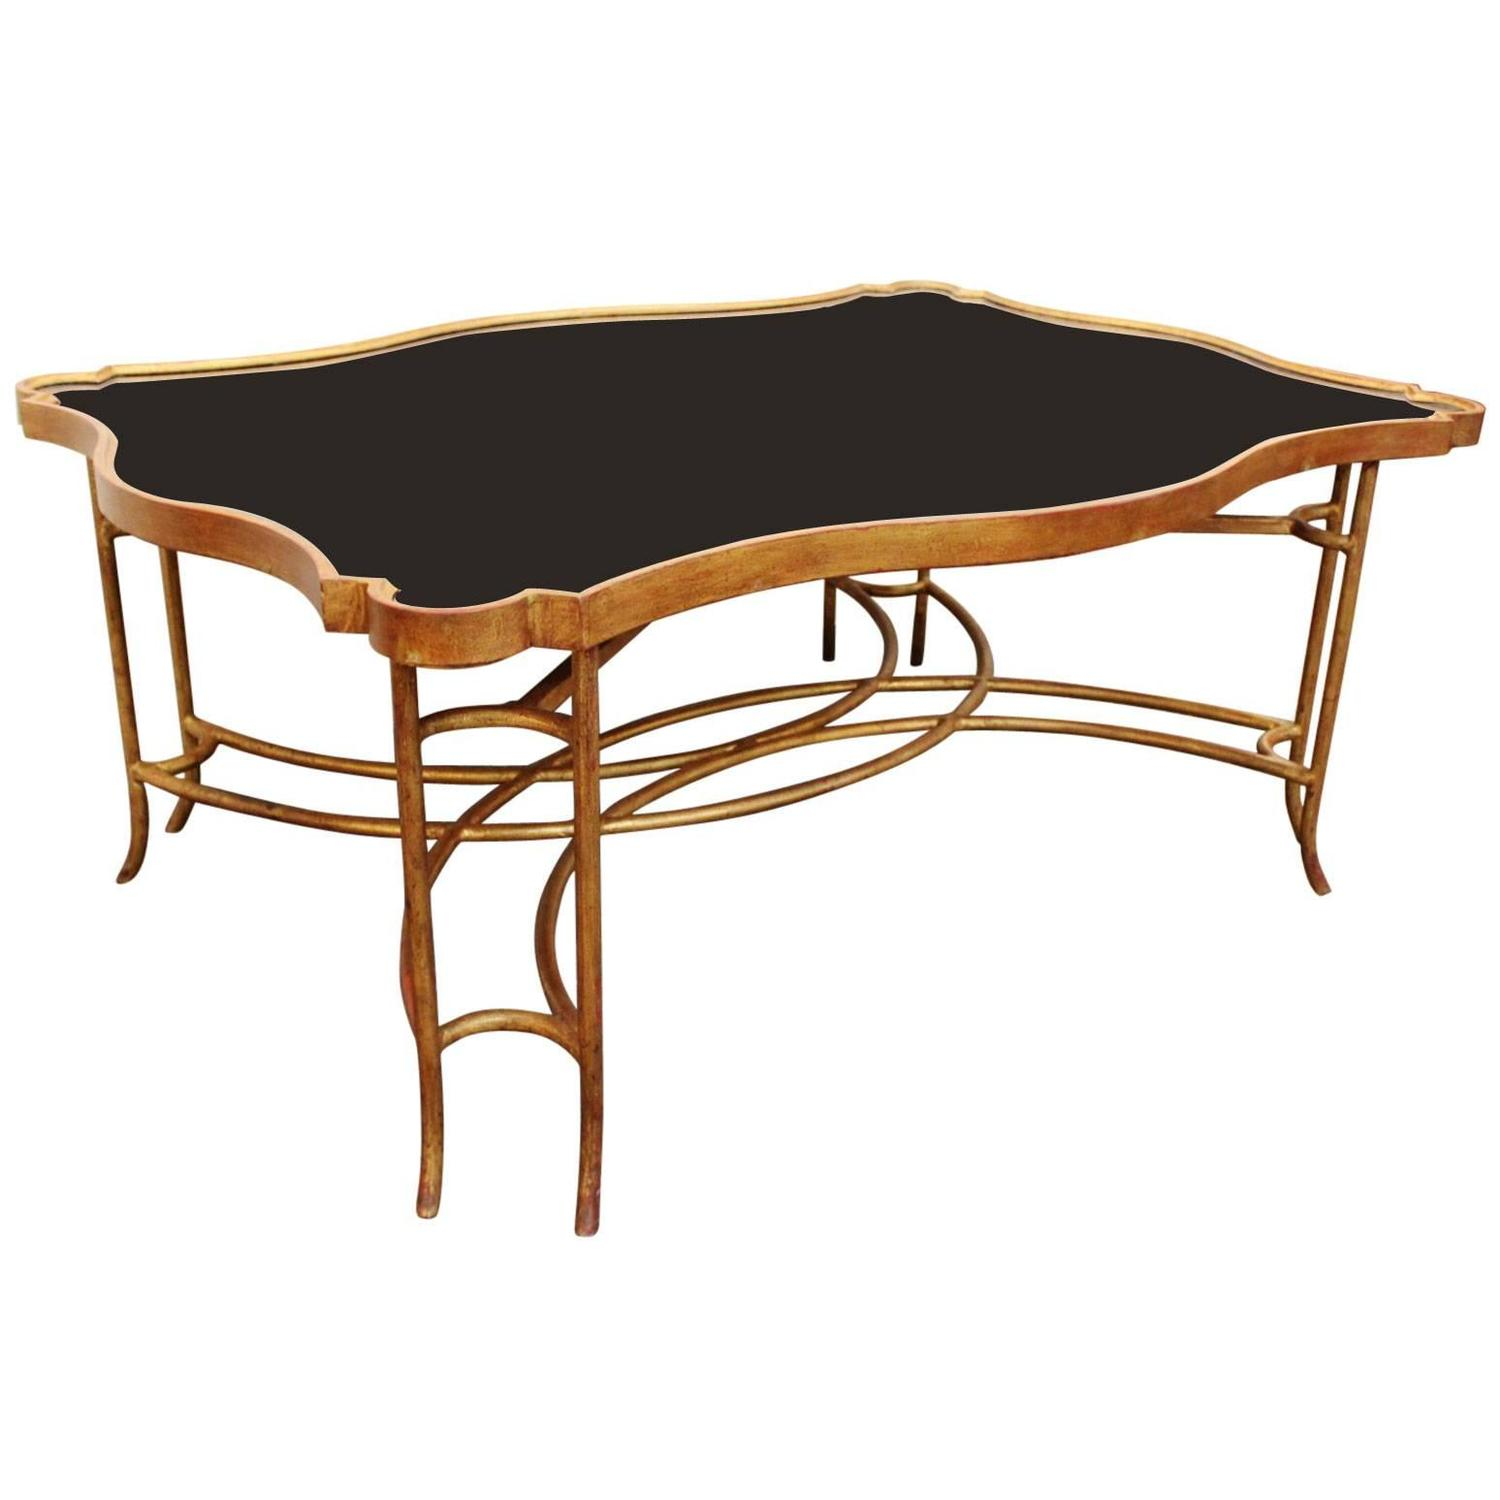 Gilt Iron Coffee Table With Polished Black Granite Top At 1stdibs